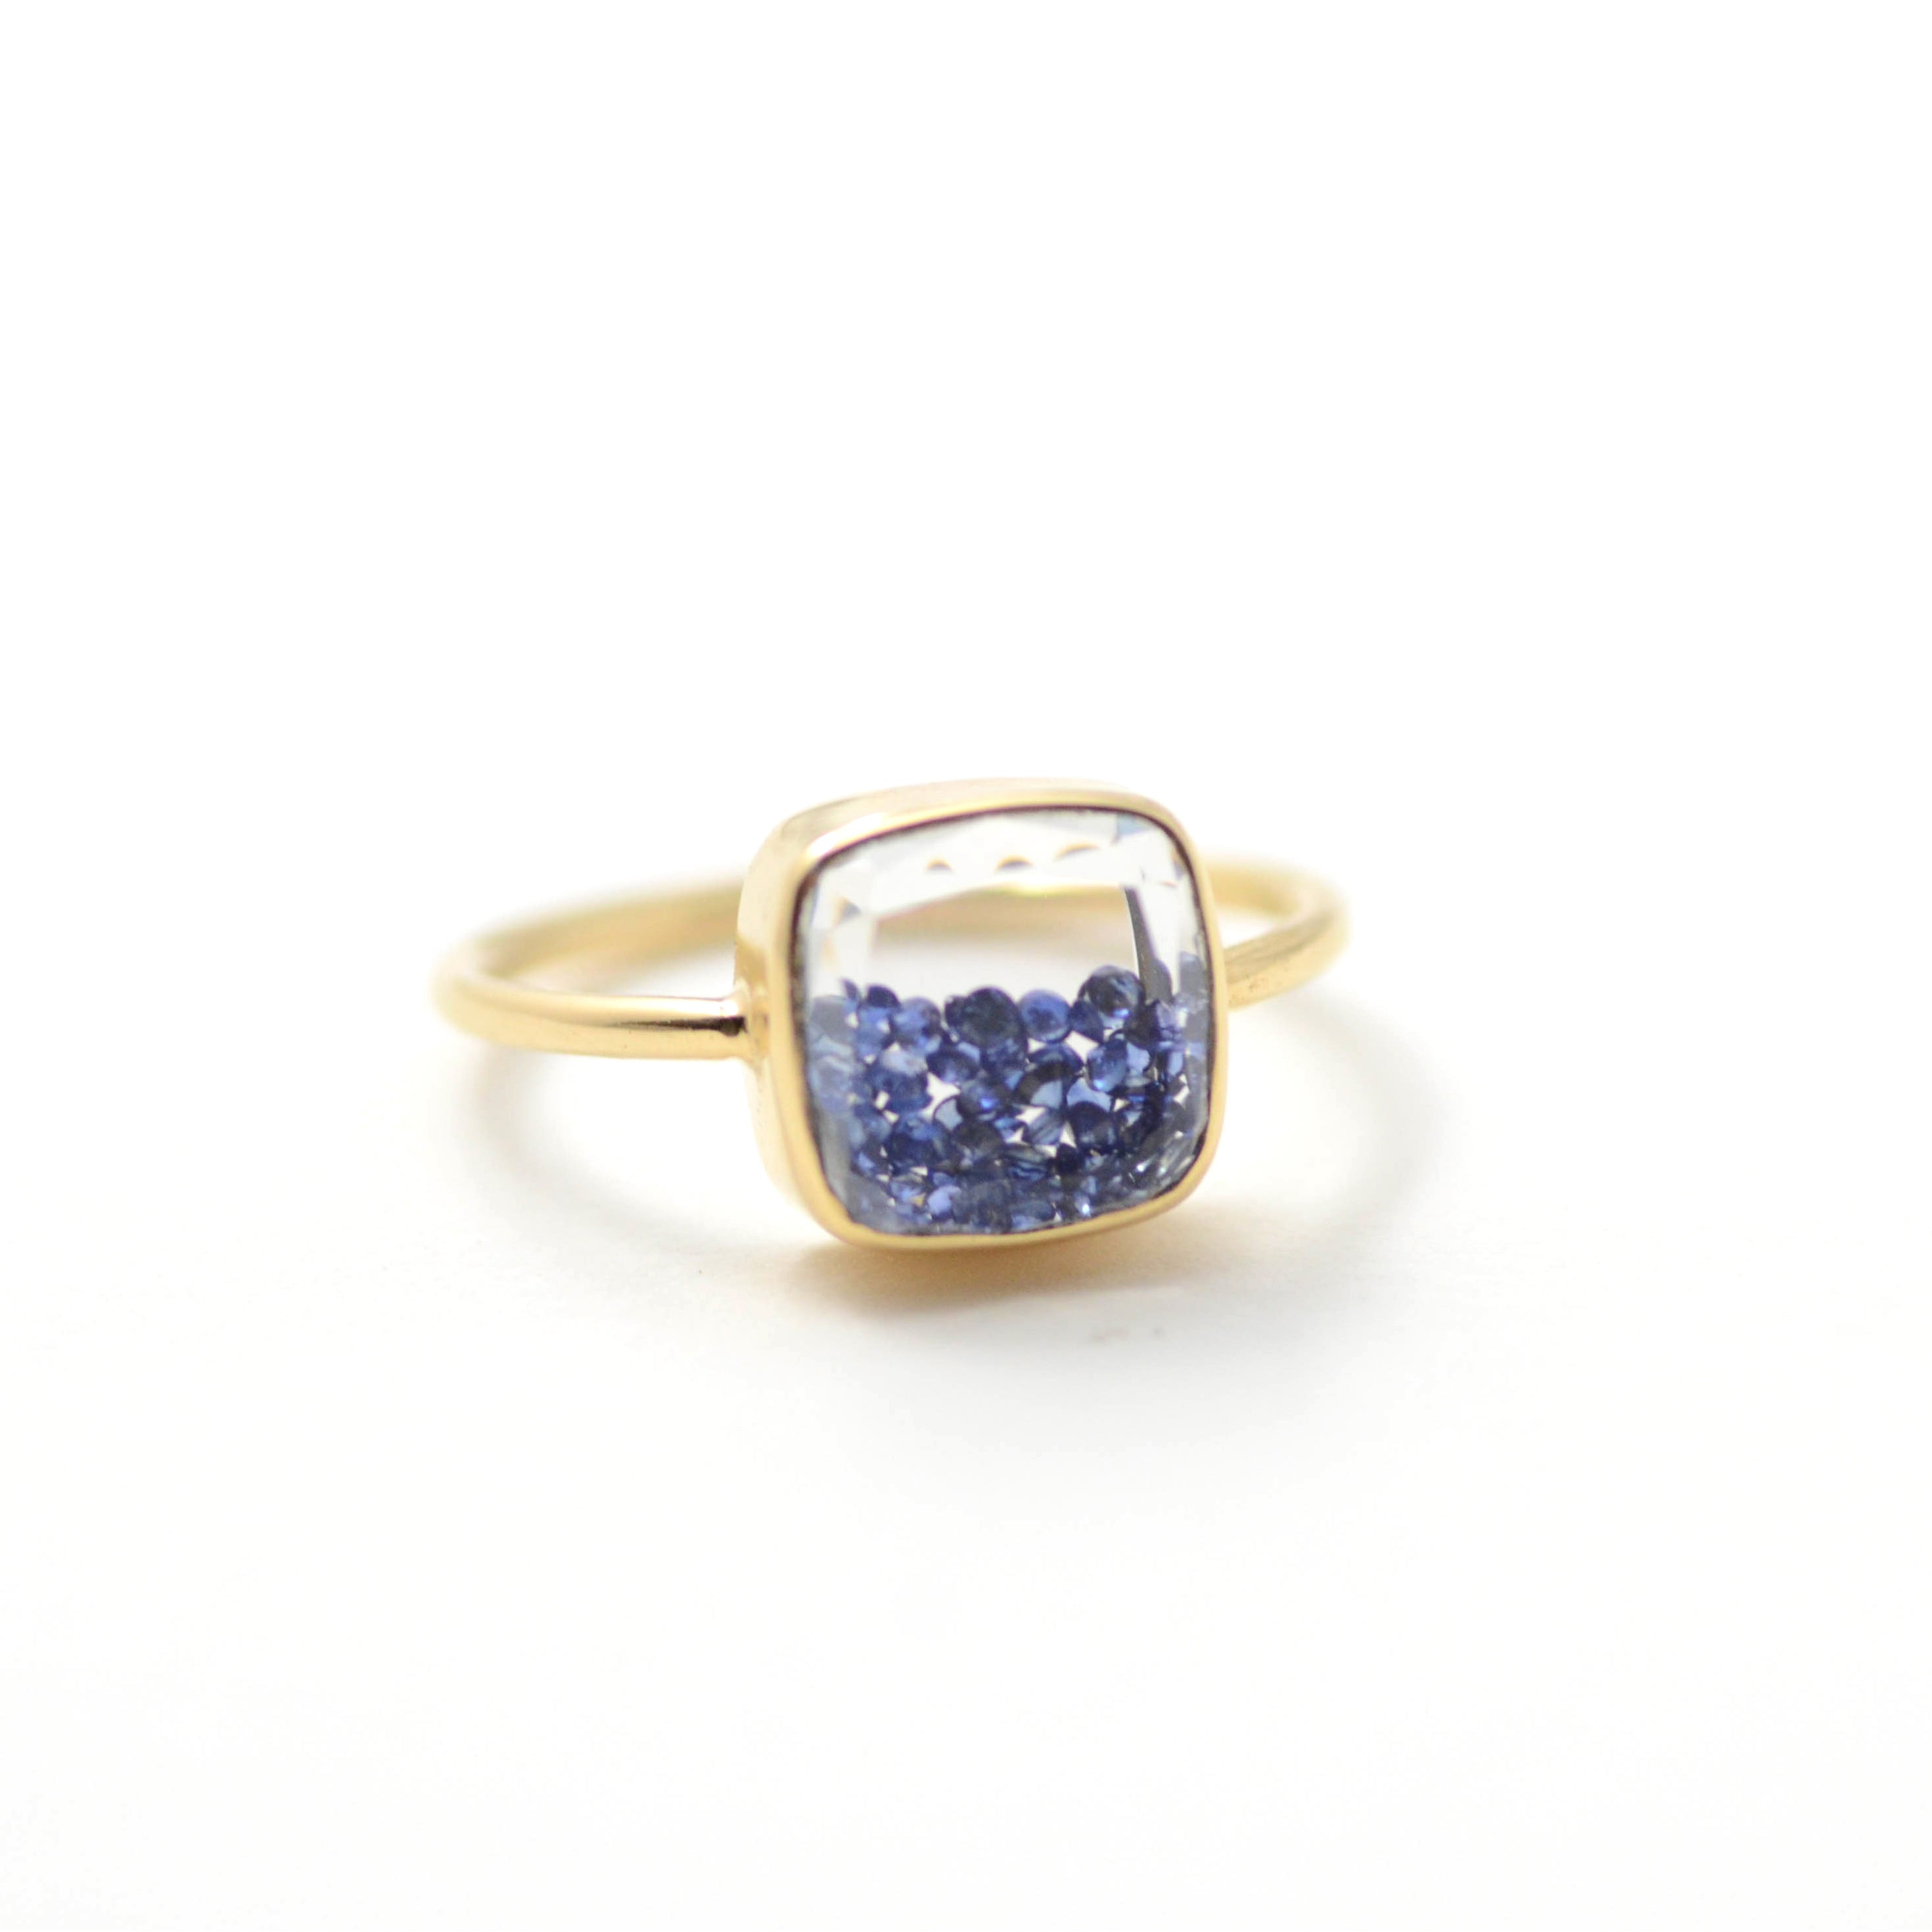 moritz glik blue sapphire shake ring in yellow gold